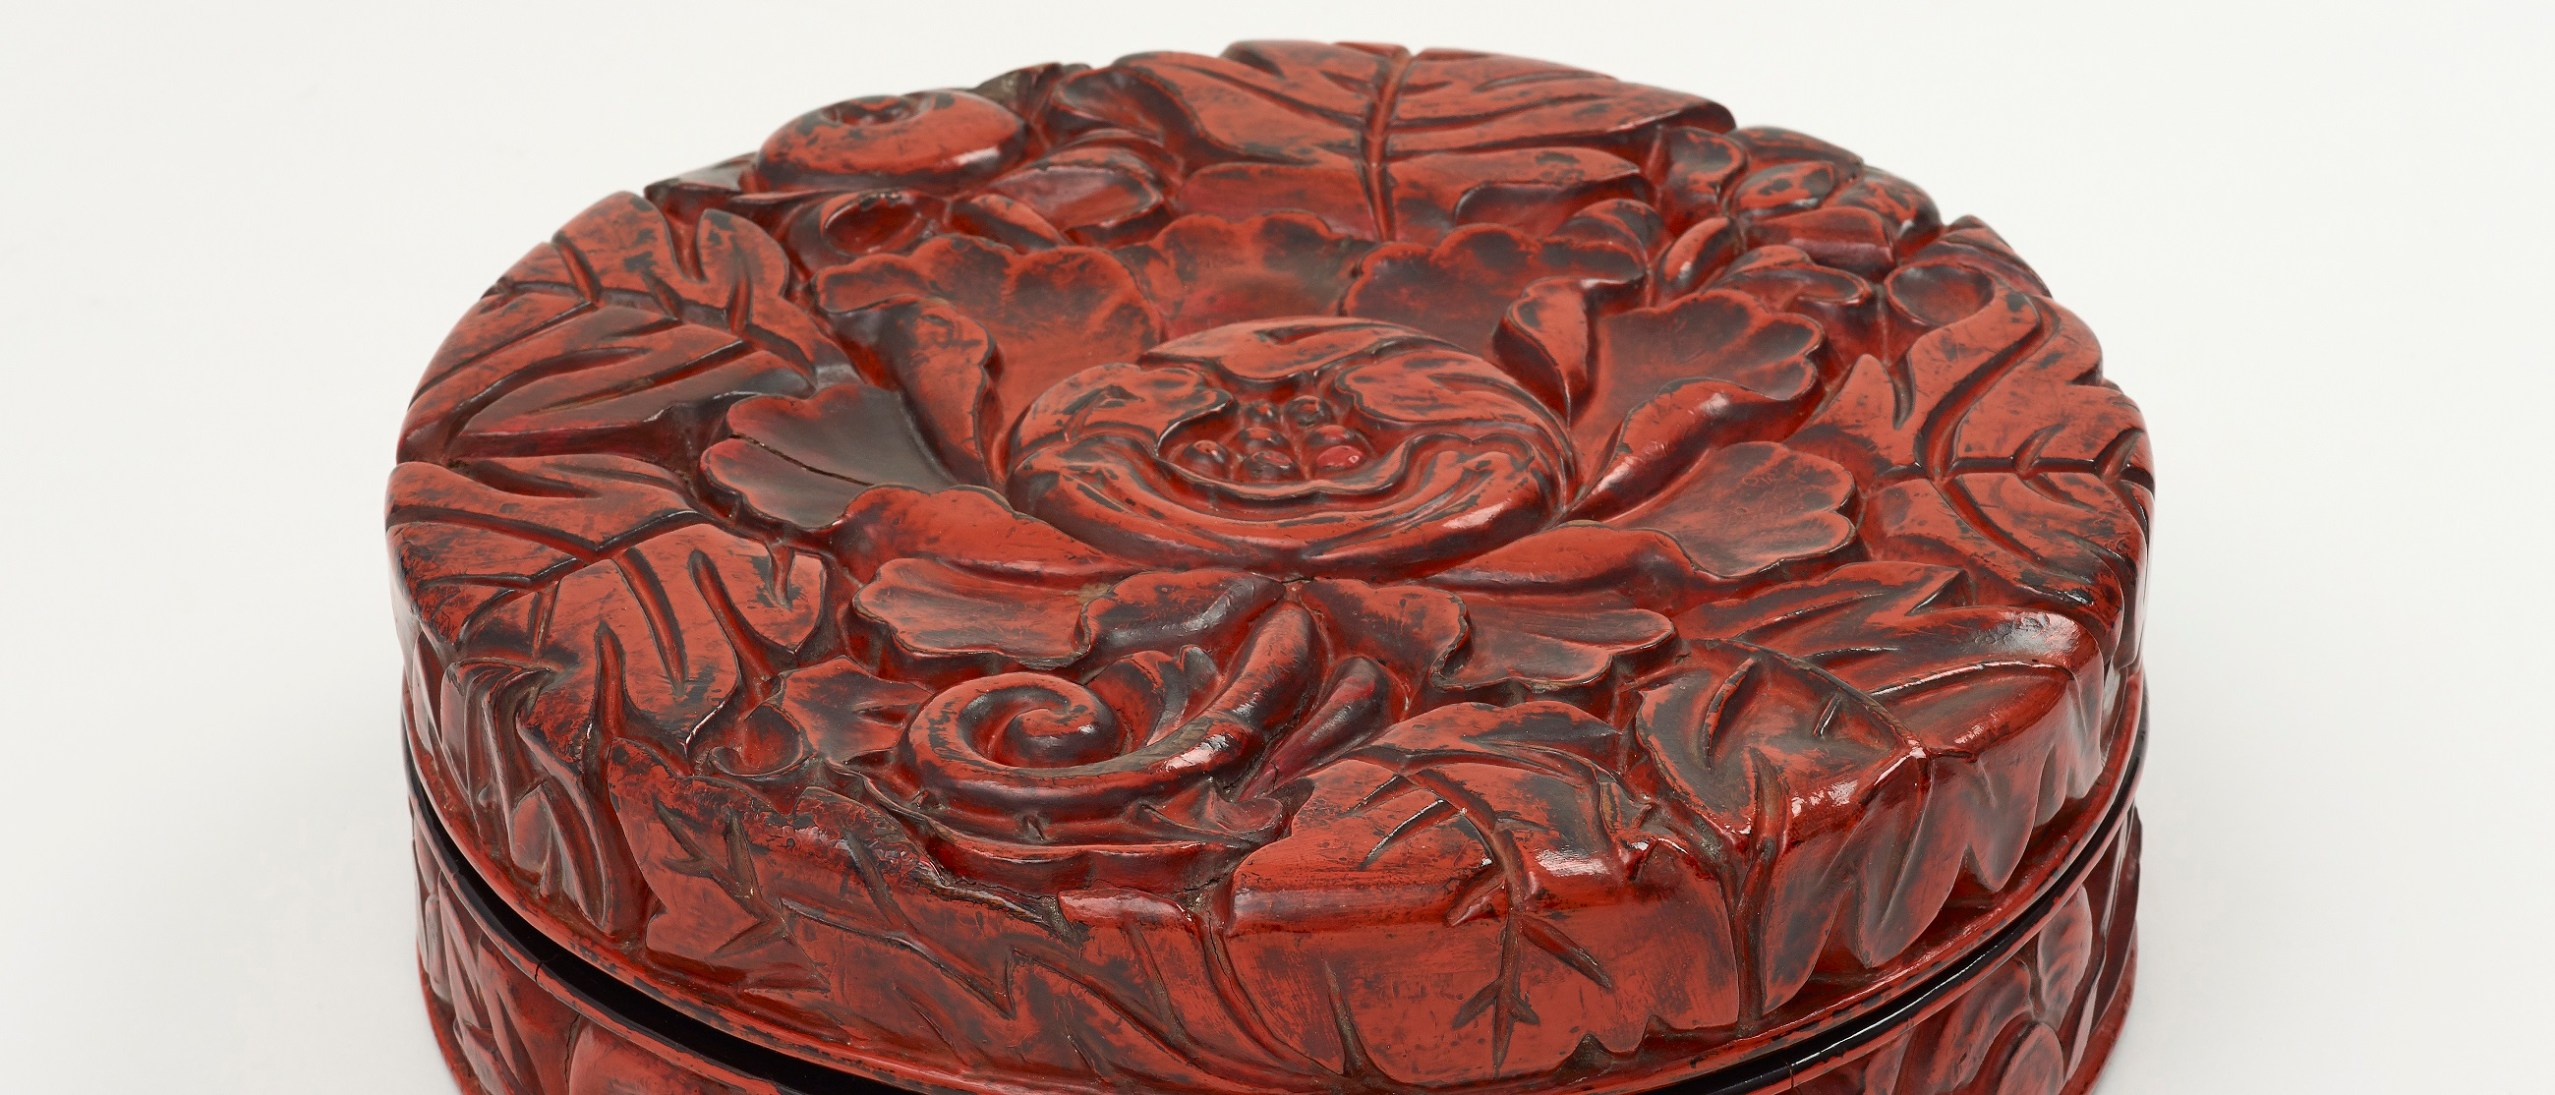 Detail image, Incense Box; Muromachi period, 15th century; Red and black lacquer on carved wood (Kamakura-bori); Freer Gallery of Art; F1967.9a-d